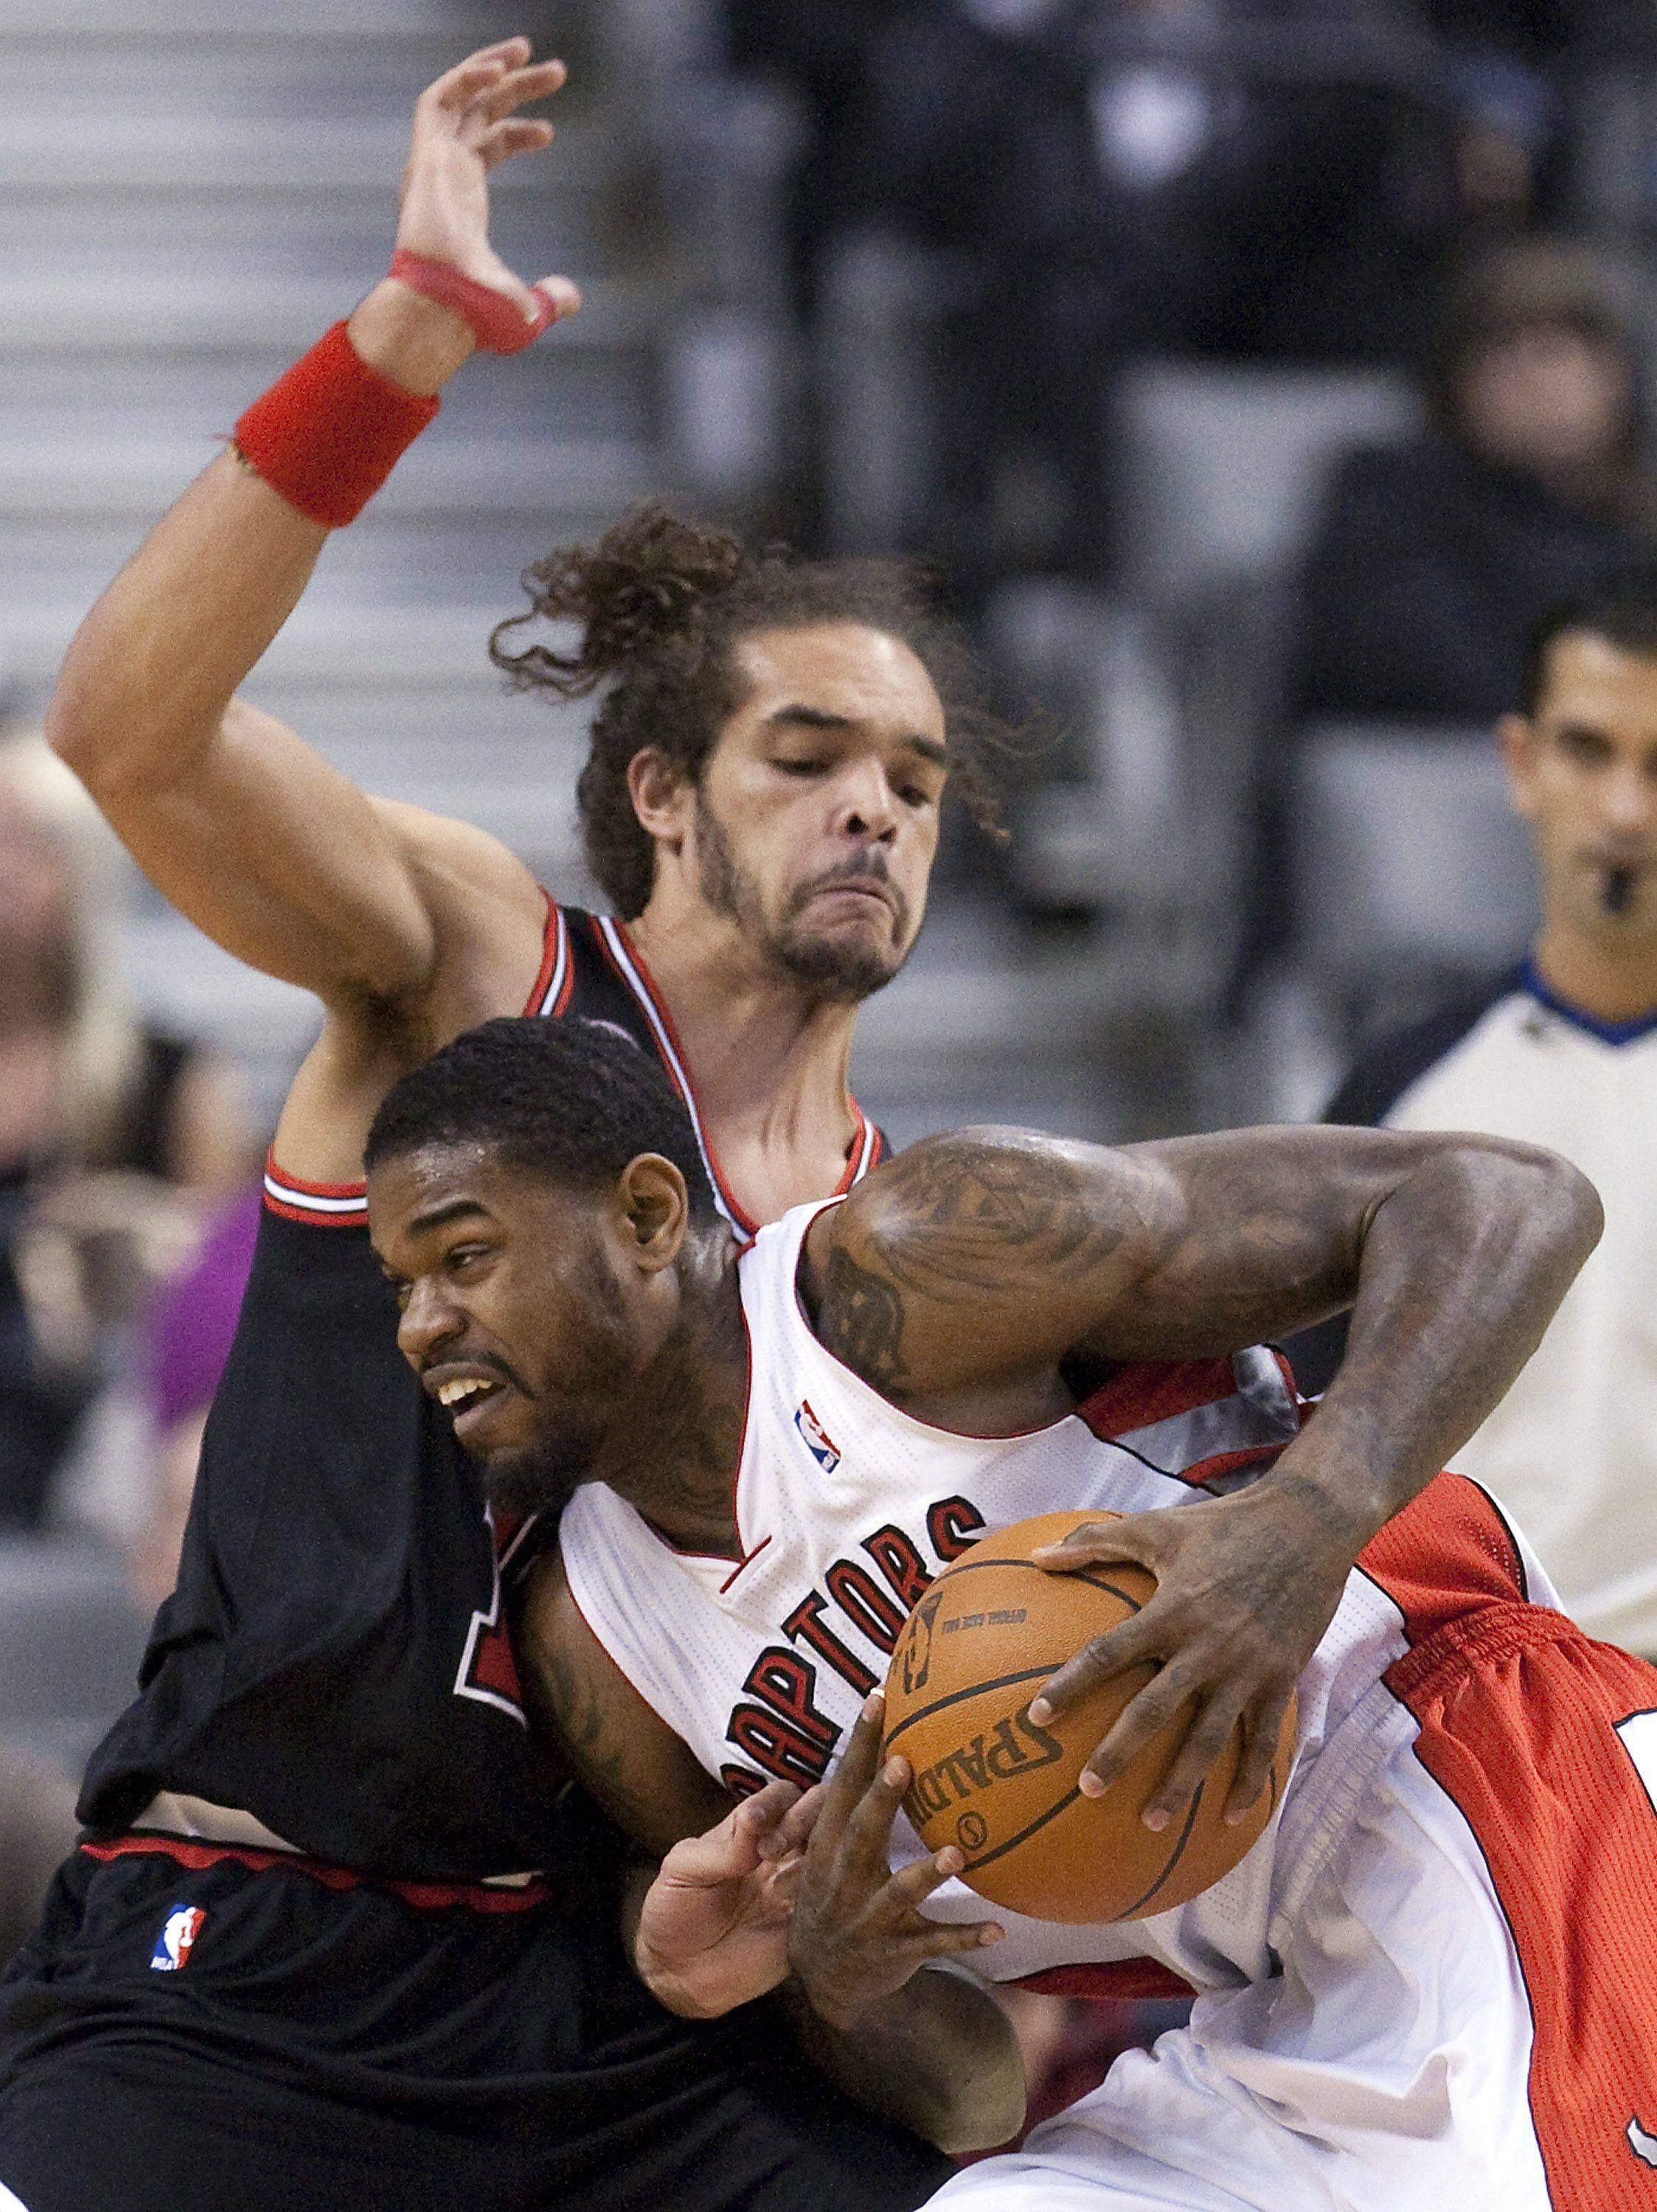 Bulls center Joakim Noah, with his right thumb wrapped, defends against the Raptors' Amir Johnson on Wednesday night. Noah finished with 11 points and 11 rebounds in his last game for a while.